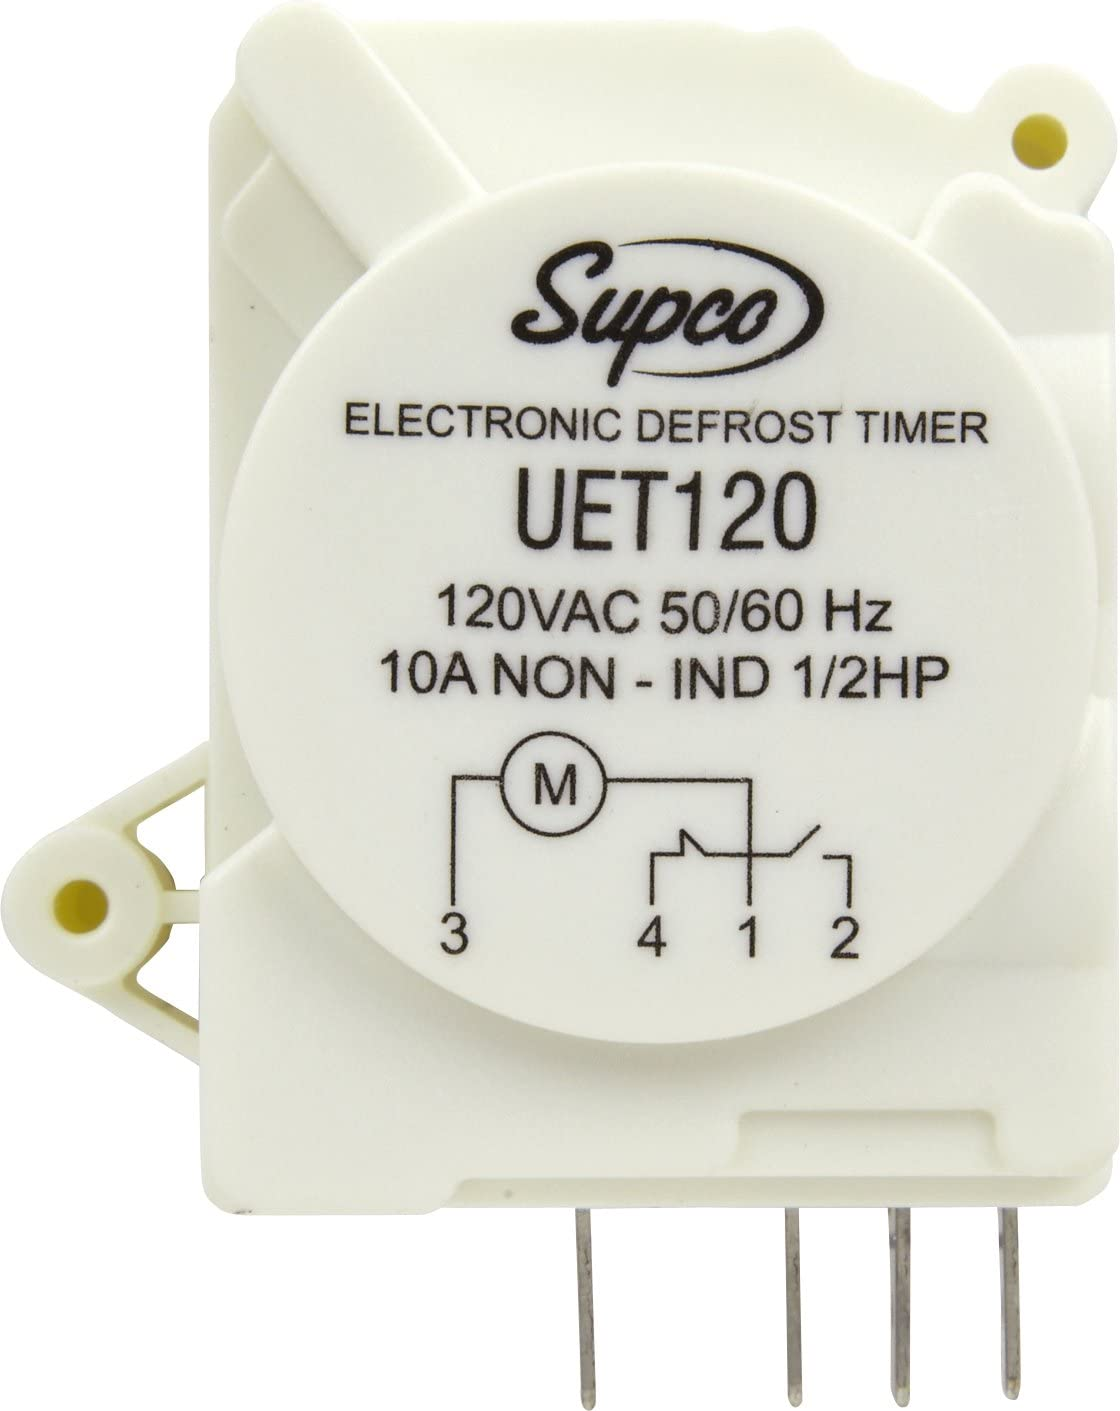 Supco UET120 Refrigerator Defrost Timer Control Universal 120 Volt Electronic